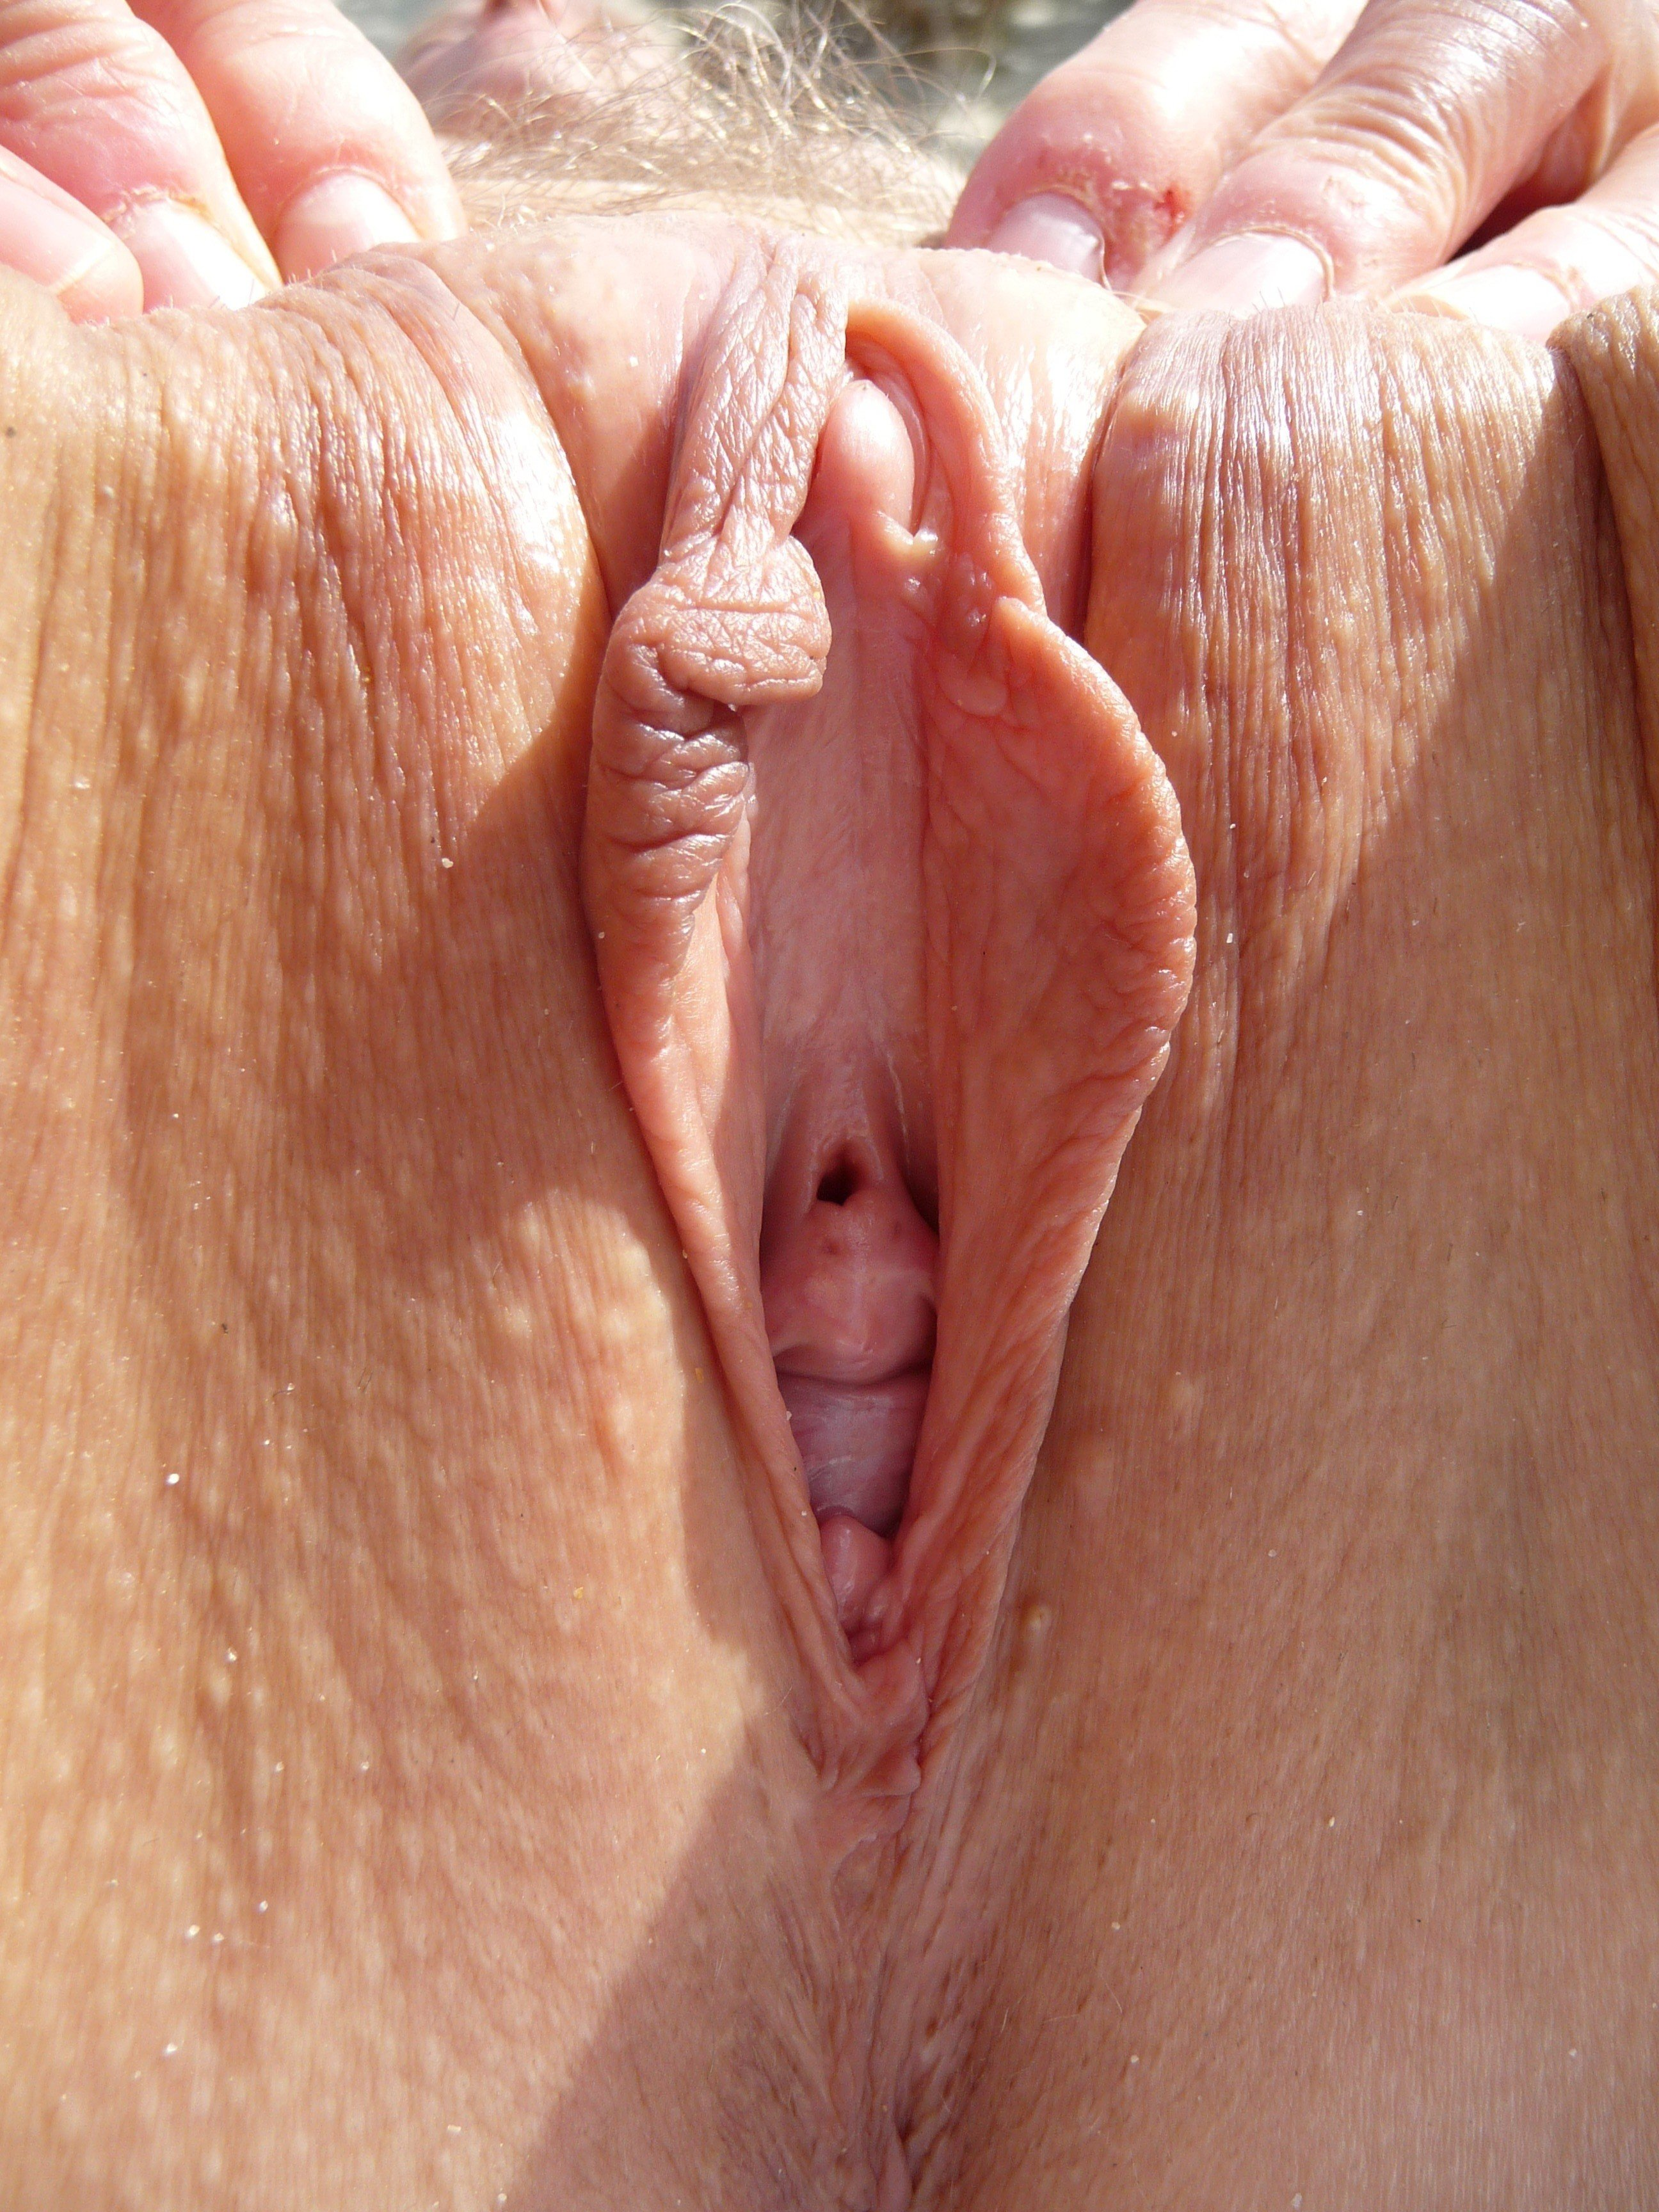 Pussy teasing and clitoris cumshot